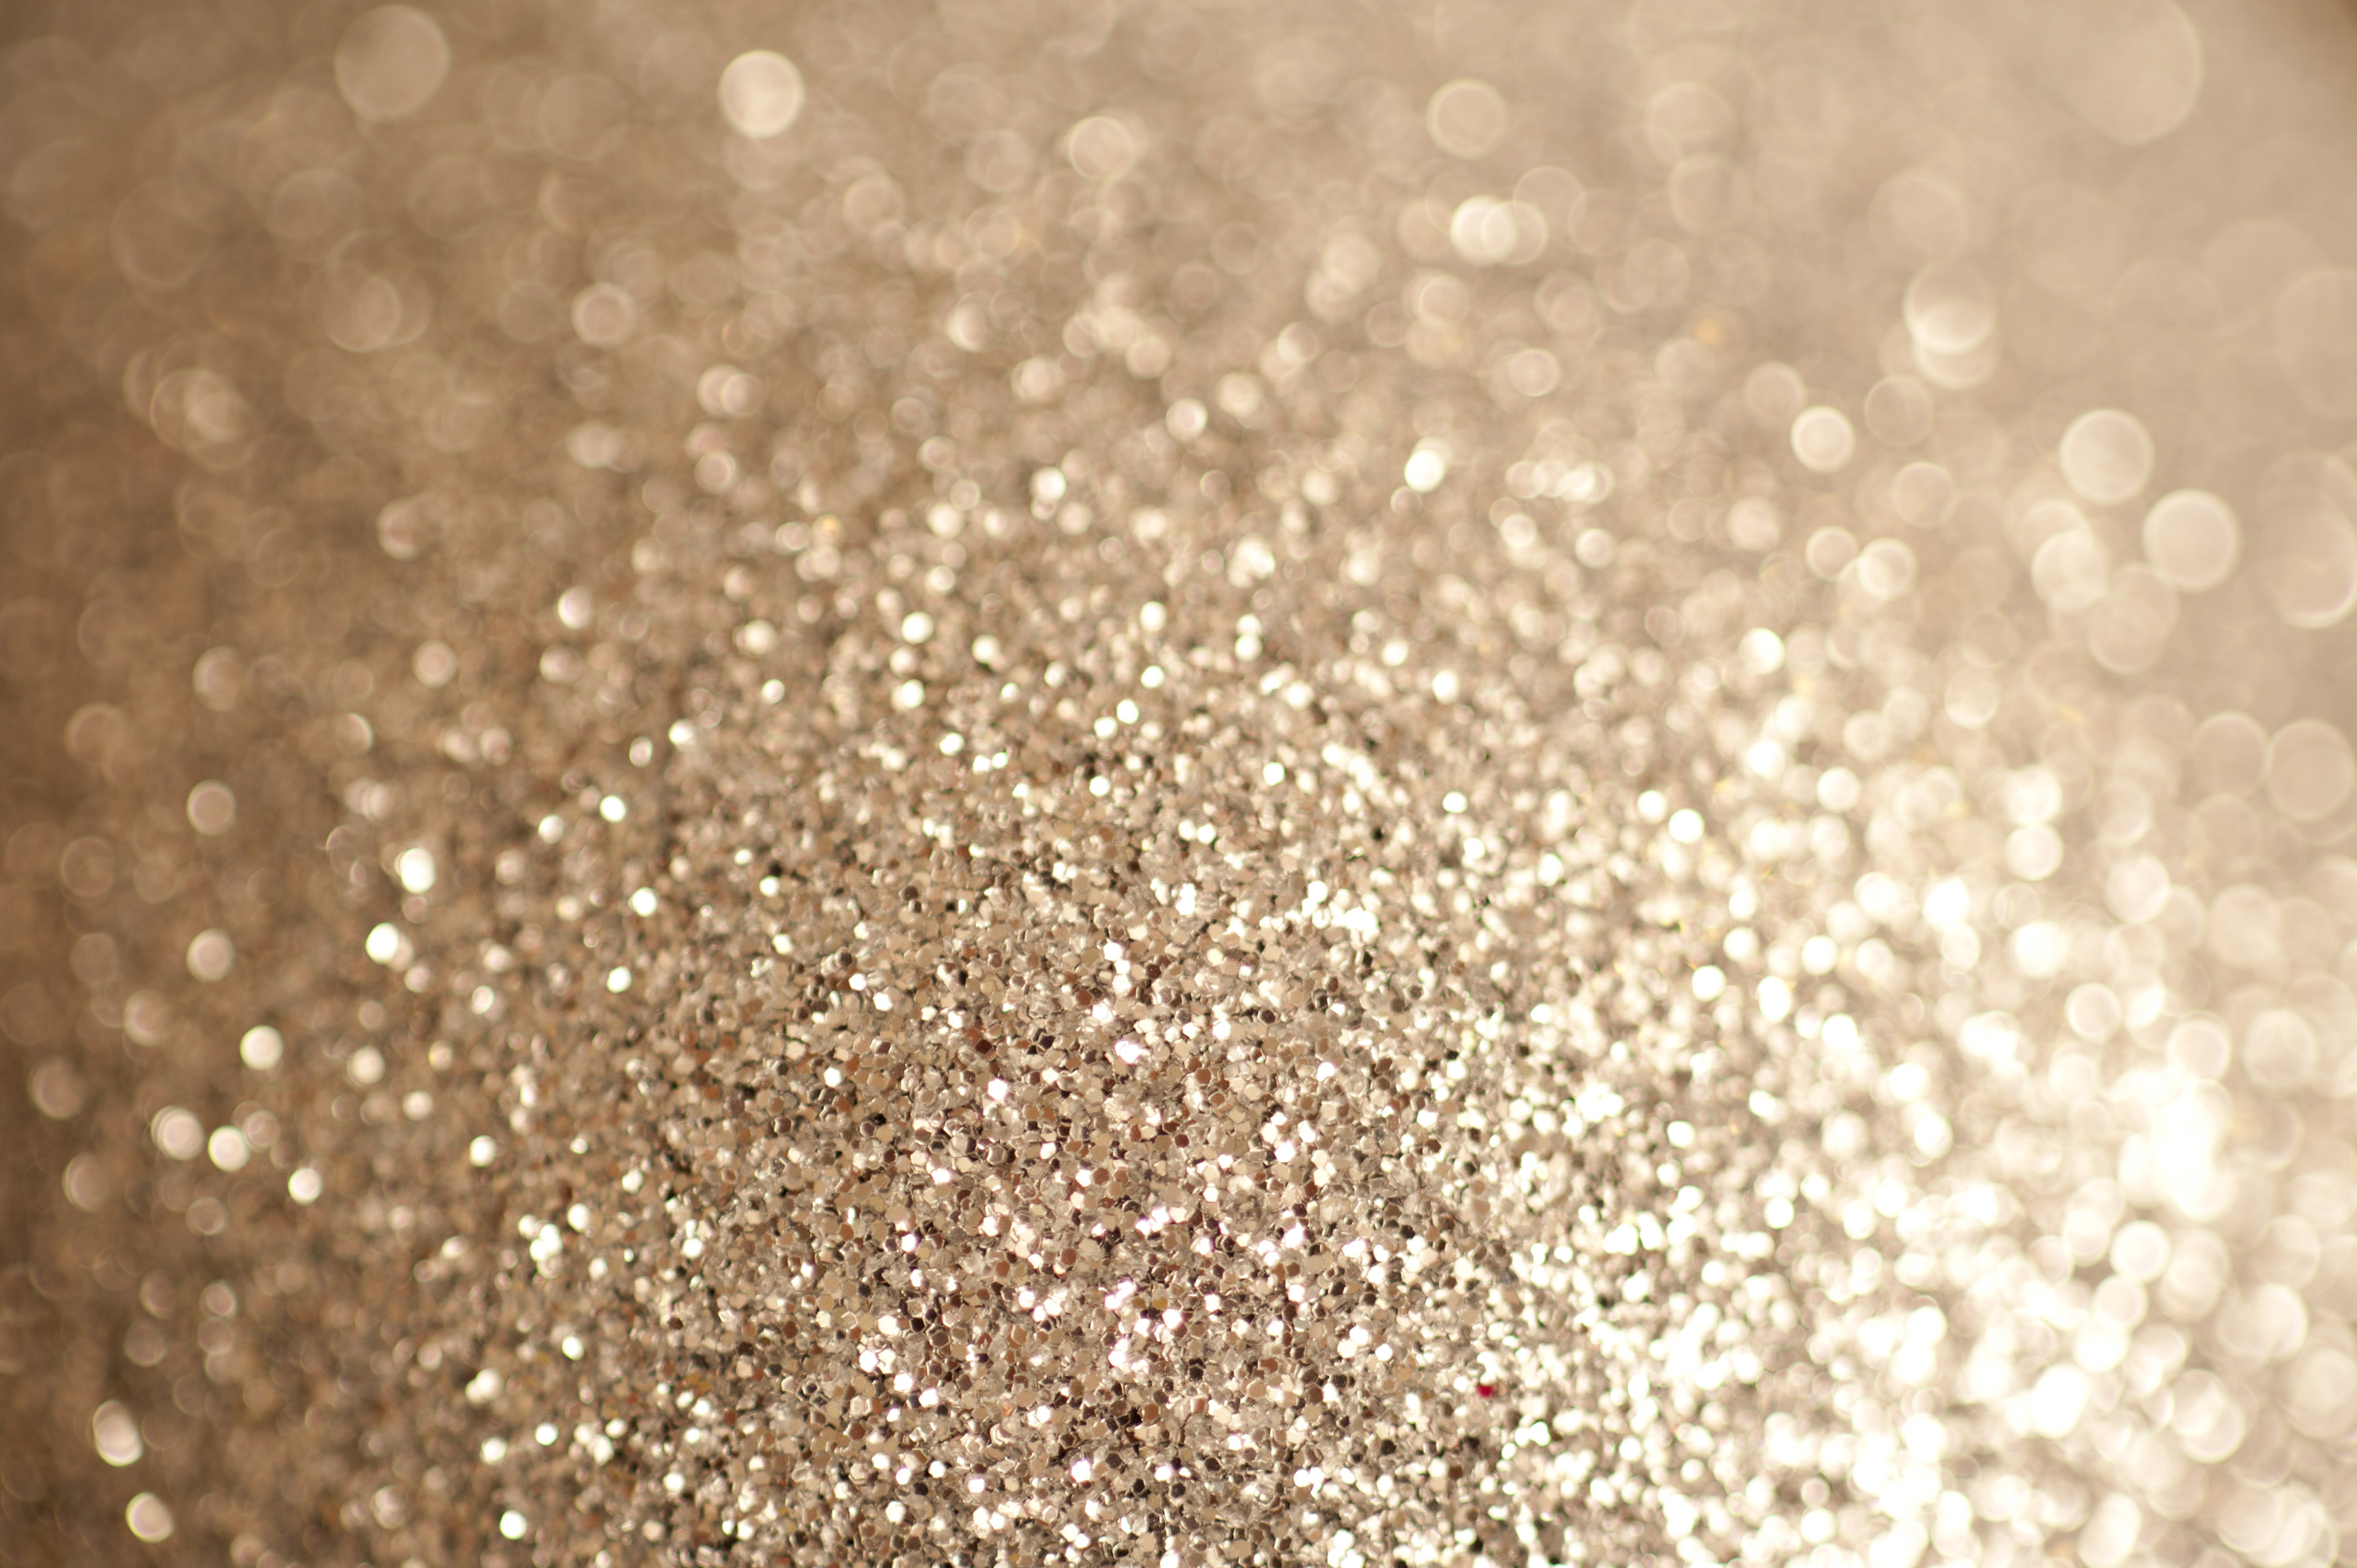 Abstract Close Up Of Sparkling Gold Glitter Background With Shallow Depth  Of Field